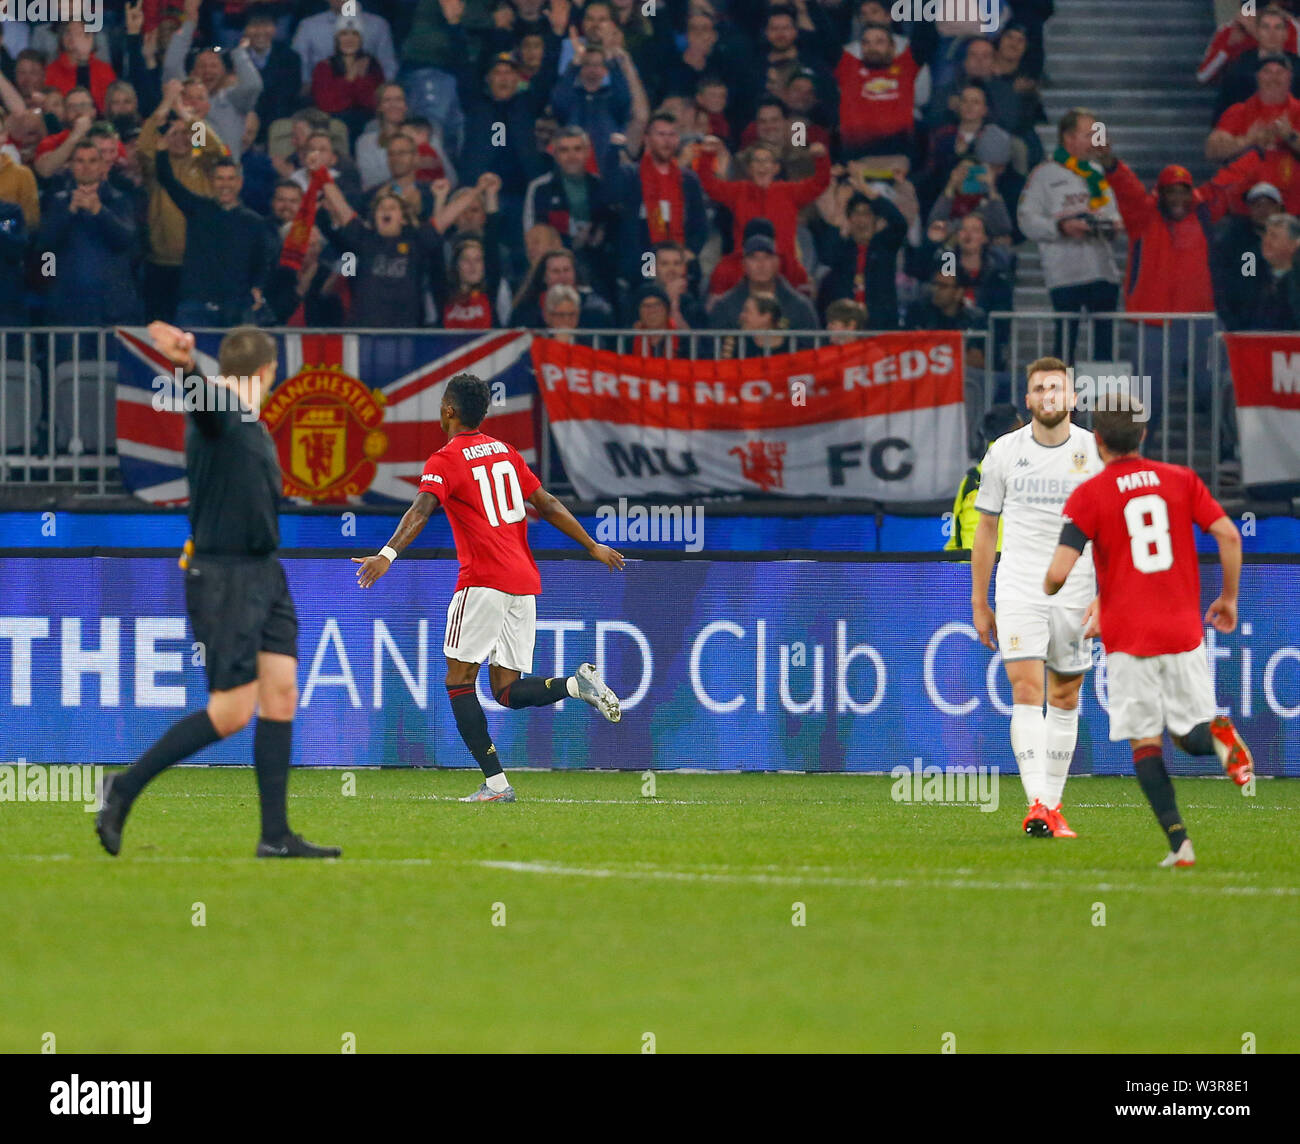 Optus Stadium, Burswood, Perth, W Australia. 17th July 2019. Manchester United versus Leeds United; pre-season tour; Marcus Rashford of Manchester United celebrates a goal in the 27th minute to make it 2-0 to Manchester United Credit: Action Plus Sports Images/Alamy Live News Stock Photo